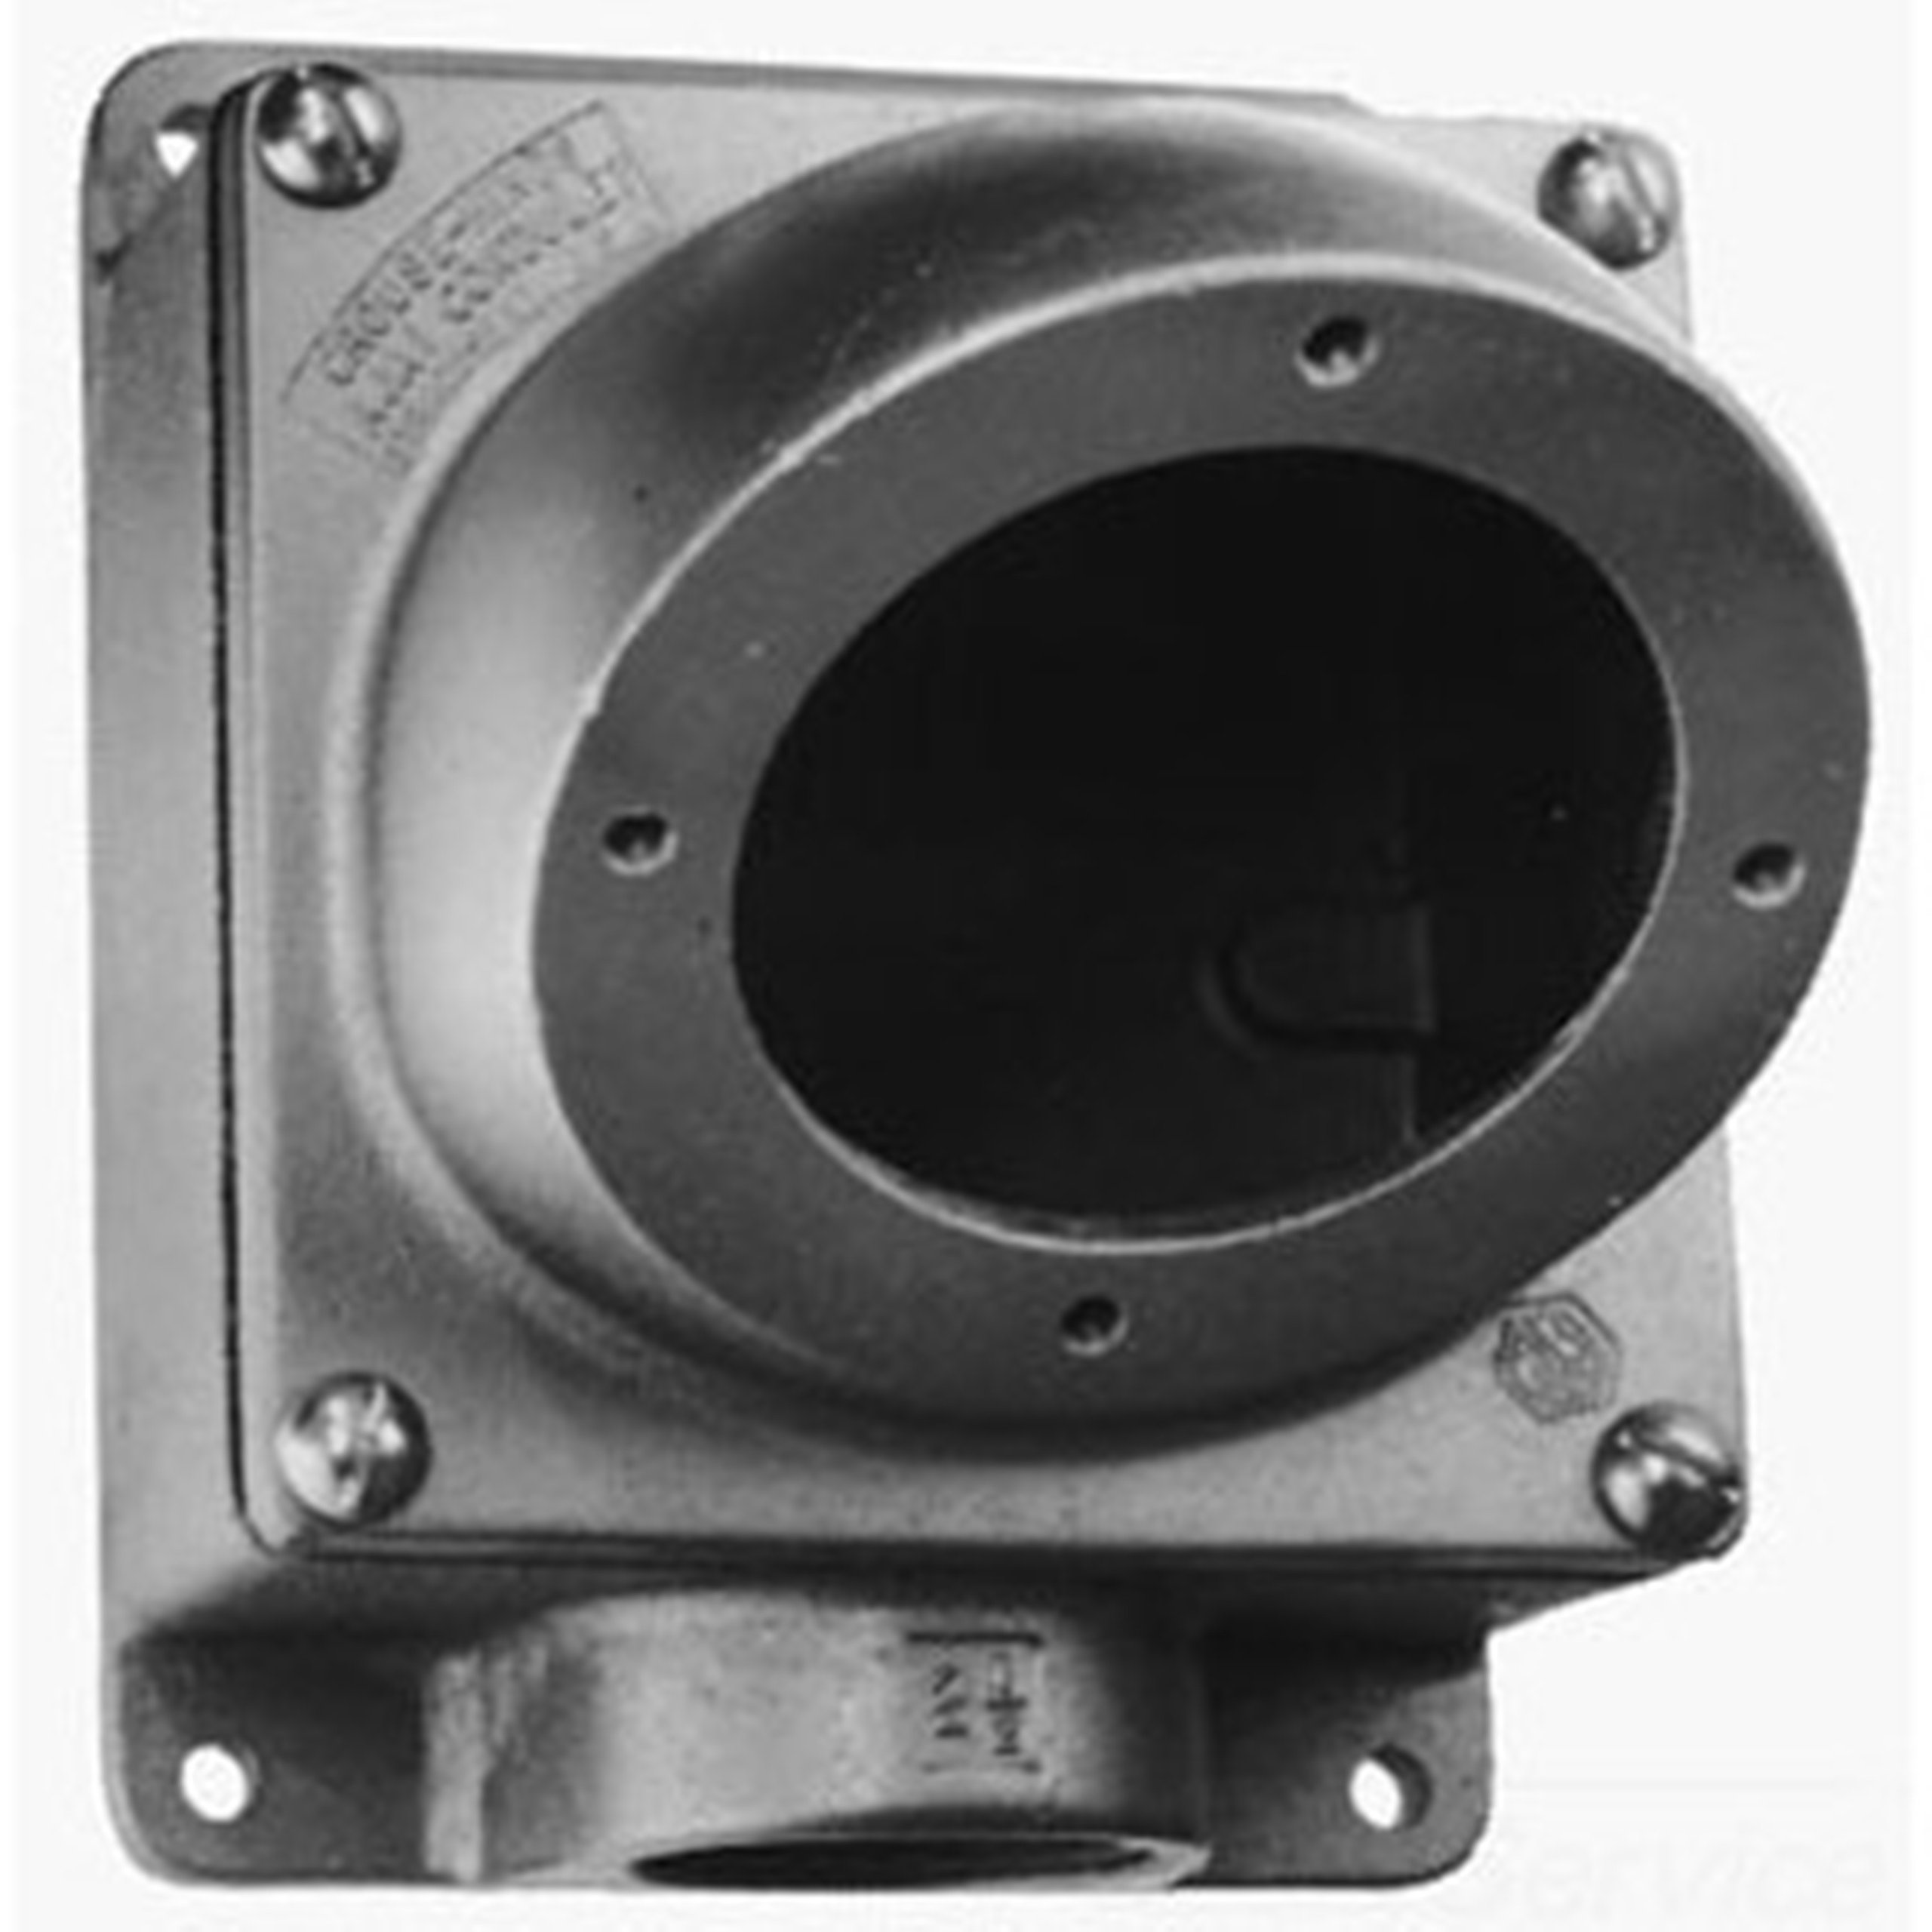 Crouse-Hinds AJ68 2-Inch Back Box With Angle Adapter For 200A Receptacle Housing by Crouse-Hinds